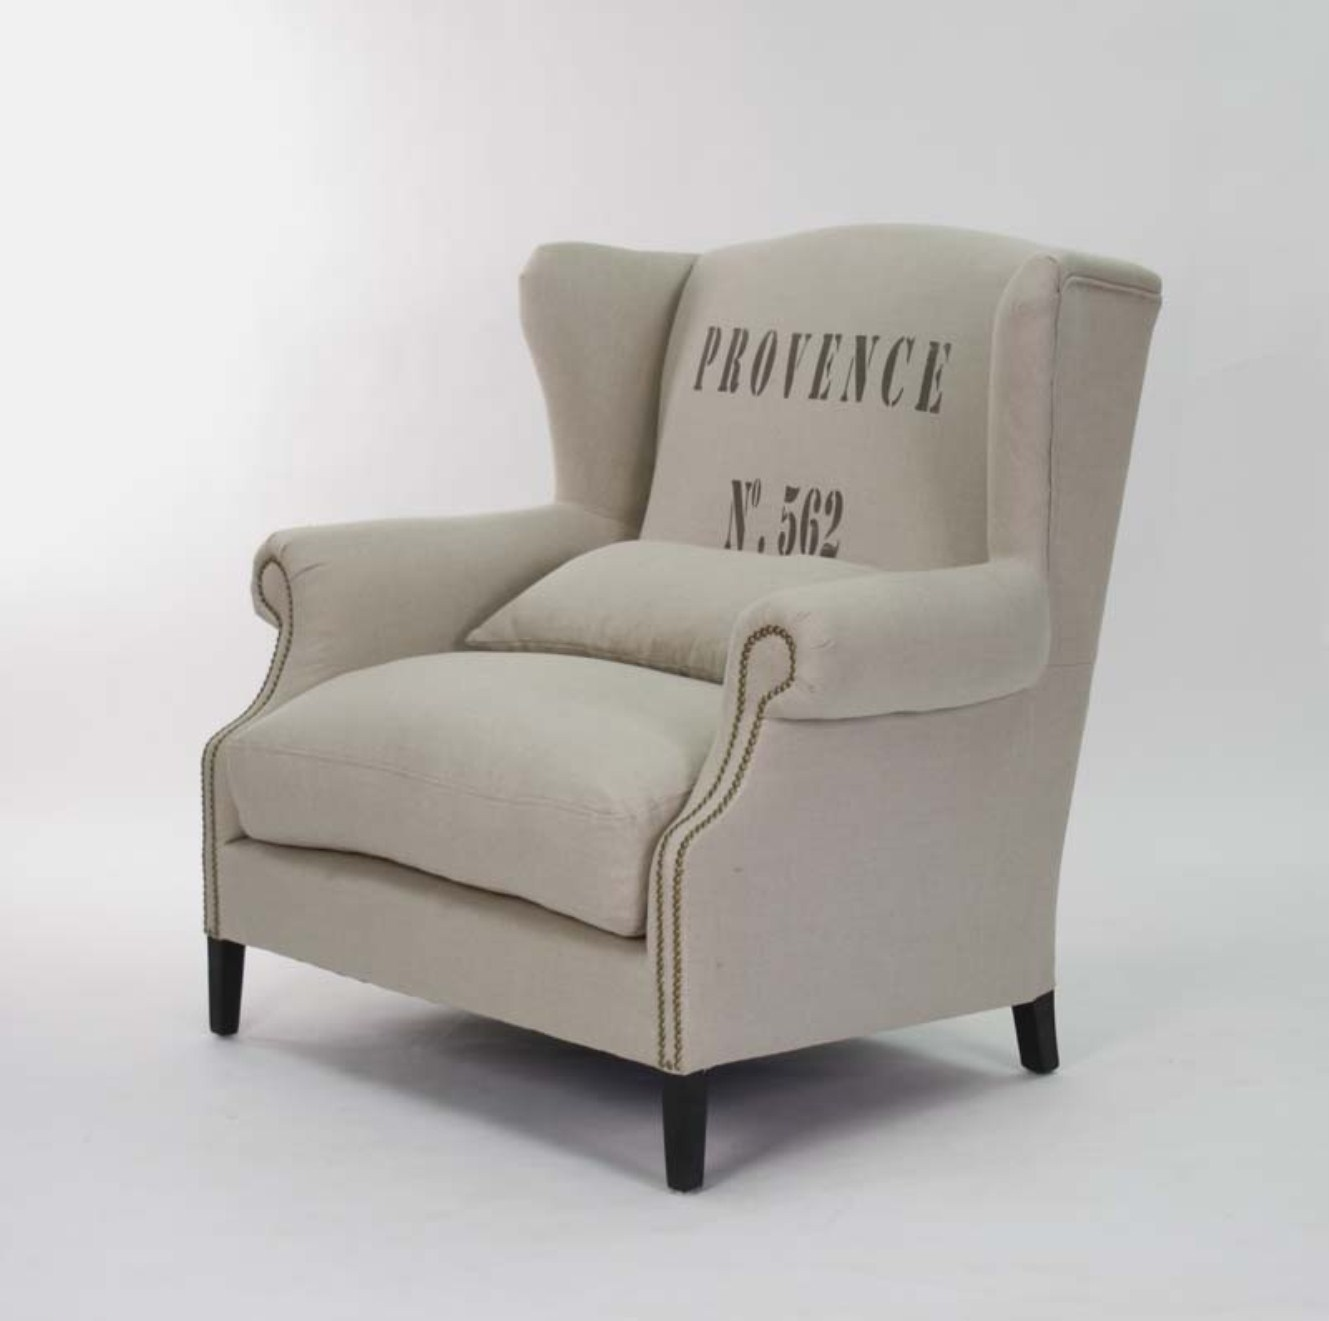 NAPOLEON HALF WINGBACK CHAIR (PROVENCE), FRENCH SCRIPT ...